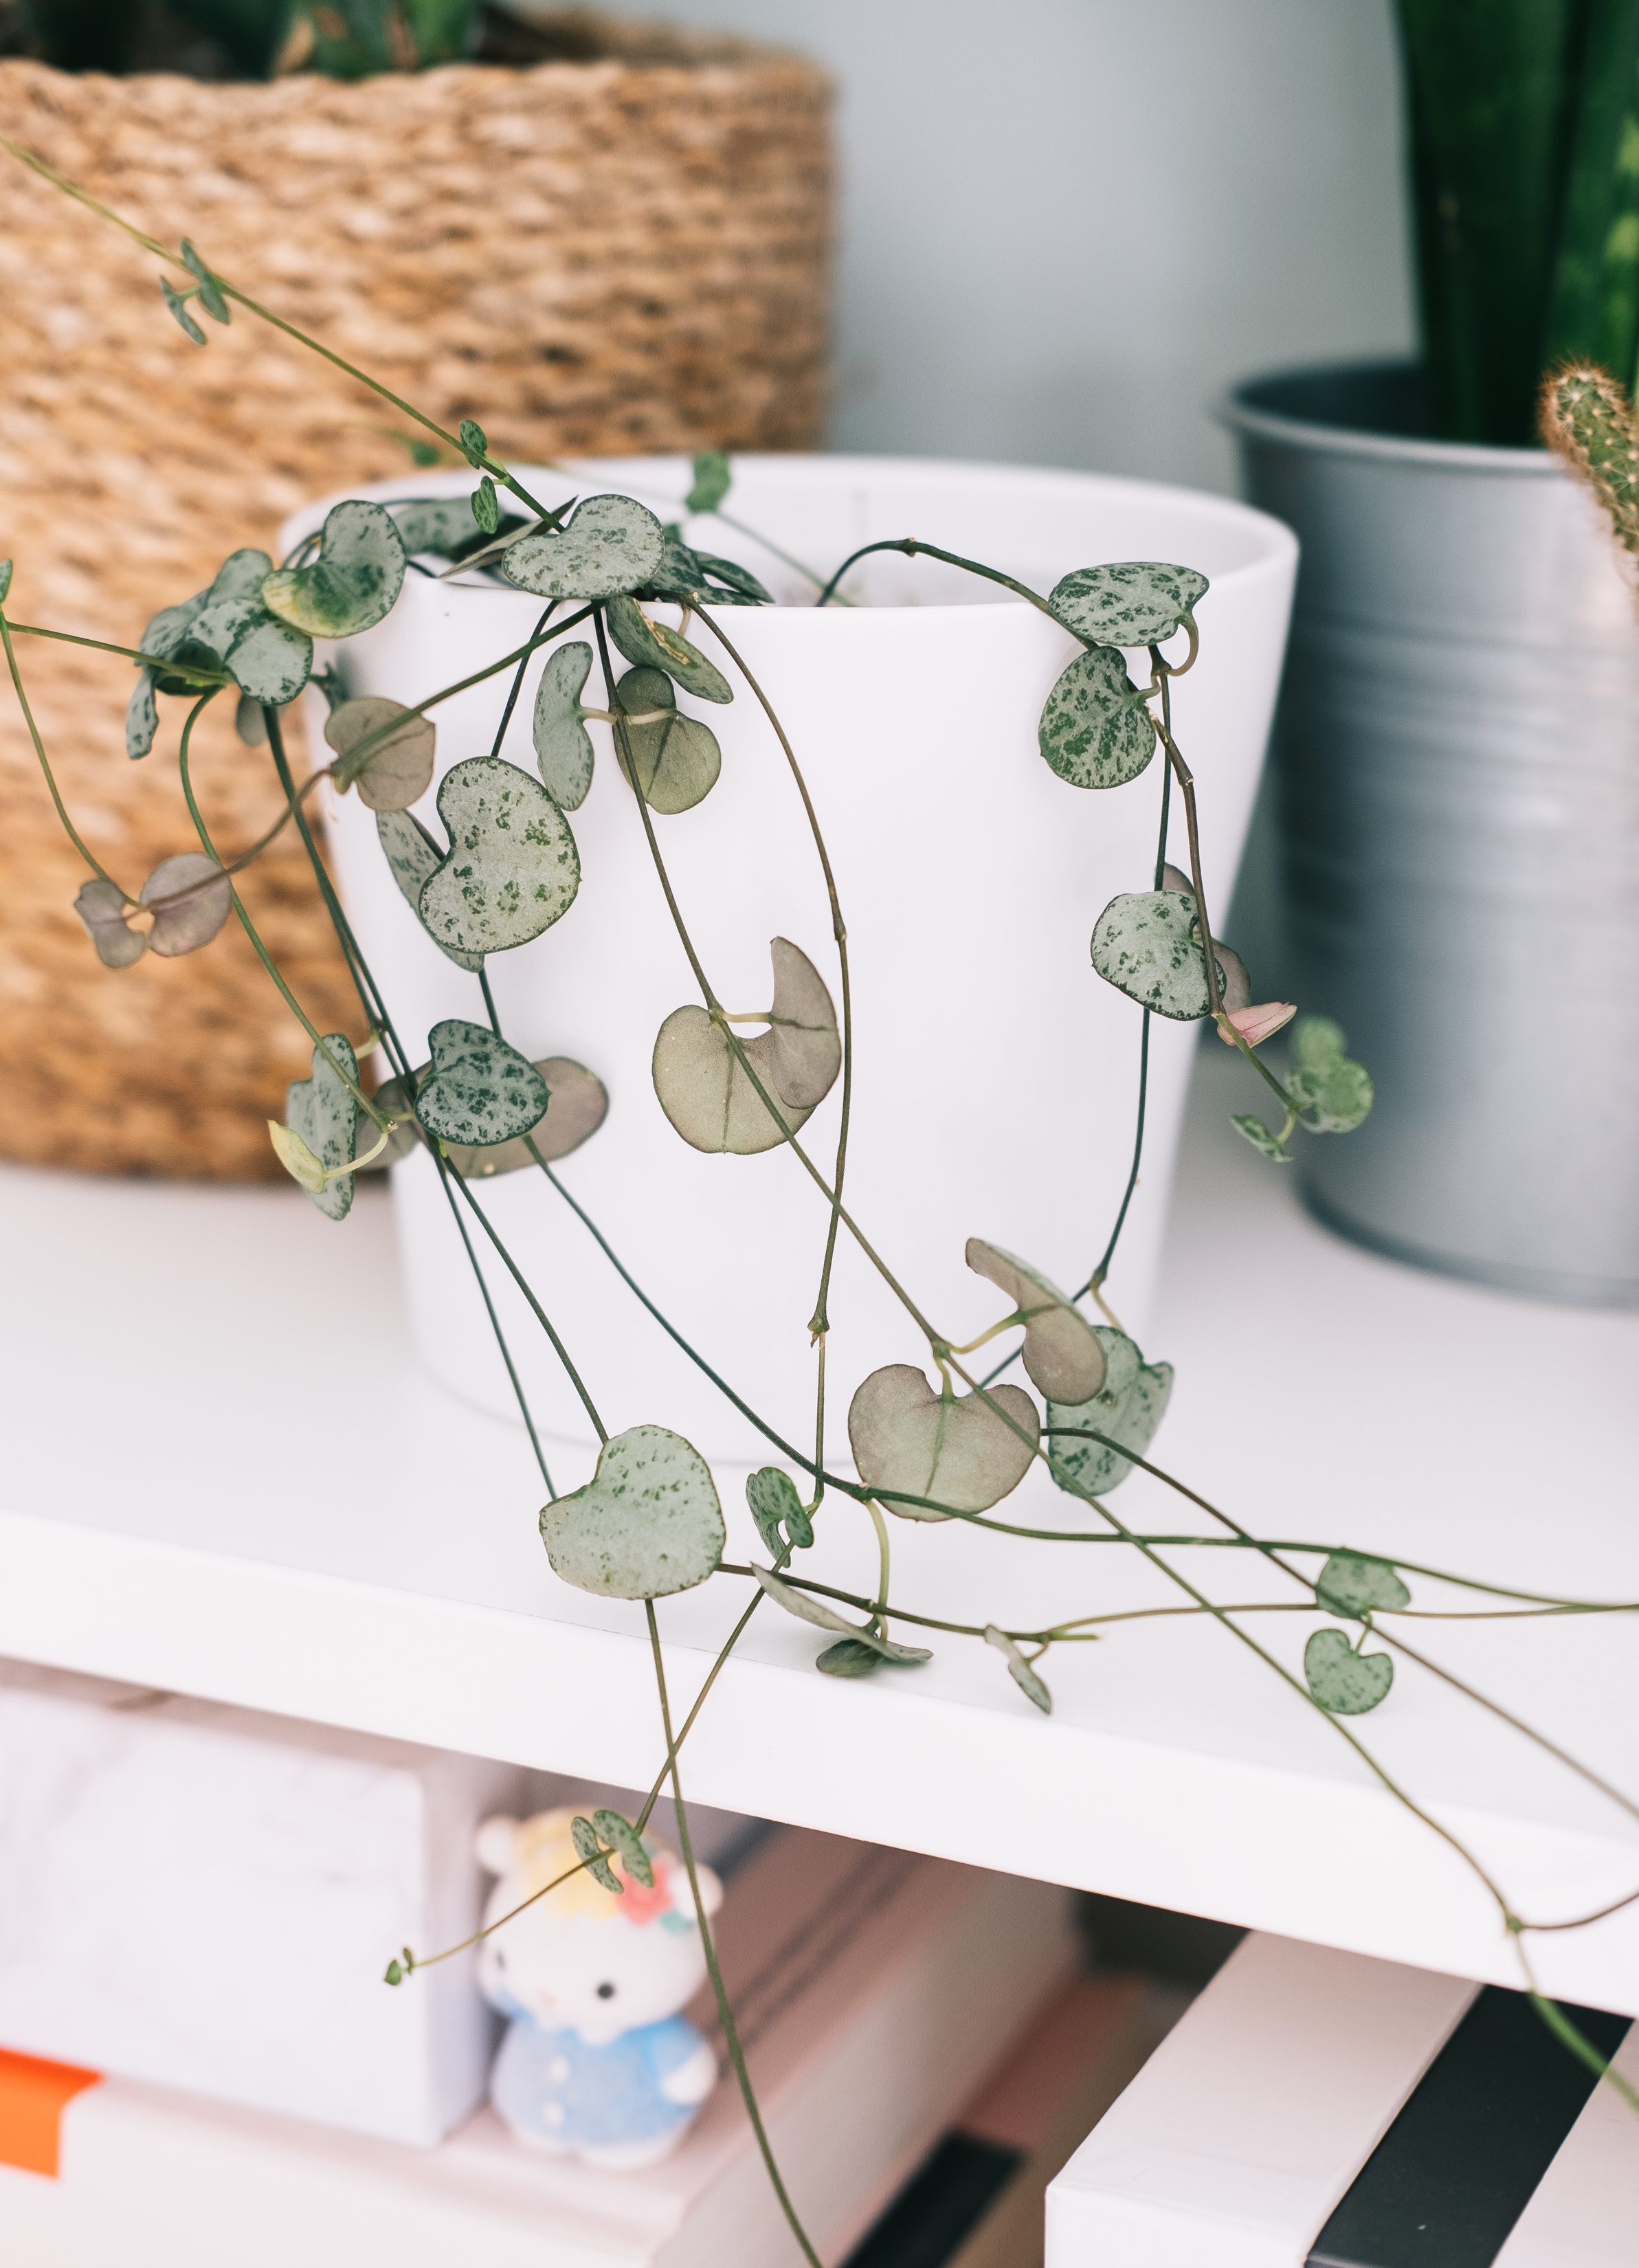 CEROPEGIA WOODII (STRING OF HEARTS) - I always looked at these plants and thought they might be really difficult to look after but it turns out they're incredibly simple to tend to. They're a trailing plant and can grow up to 5ft. Their roots are very delicate so you do want to handle them with care as you will need to give this plant a little trim every so often to encourage new growth and to prevent any tangling. I keep mine in a reasonable amount of sunlight but they're generally quite happy in most spots but probably won't thrive anywhere really dim. Due to the skinny roots, this means overwatering is common and it's easy to get root rot so wait until the soil is somewhat dry until watering again.